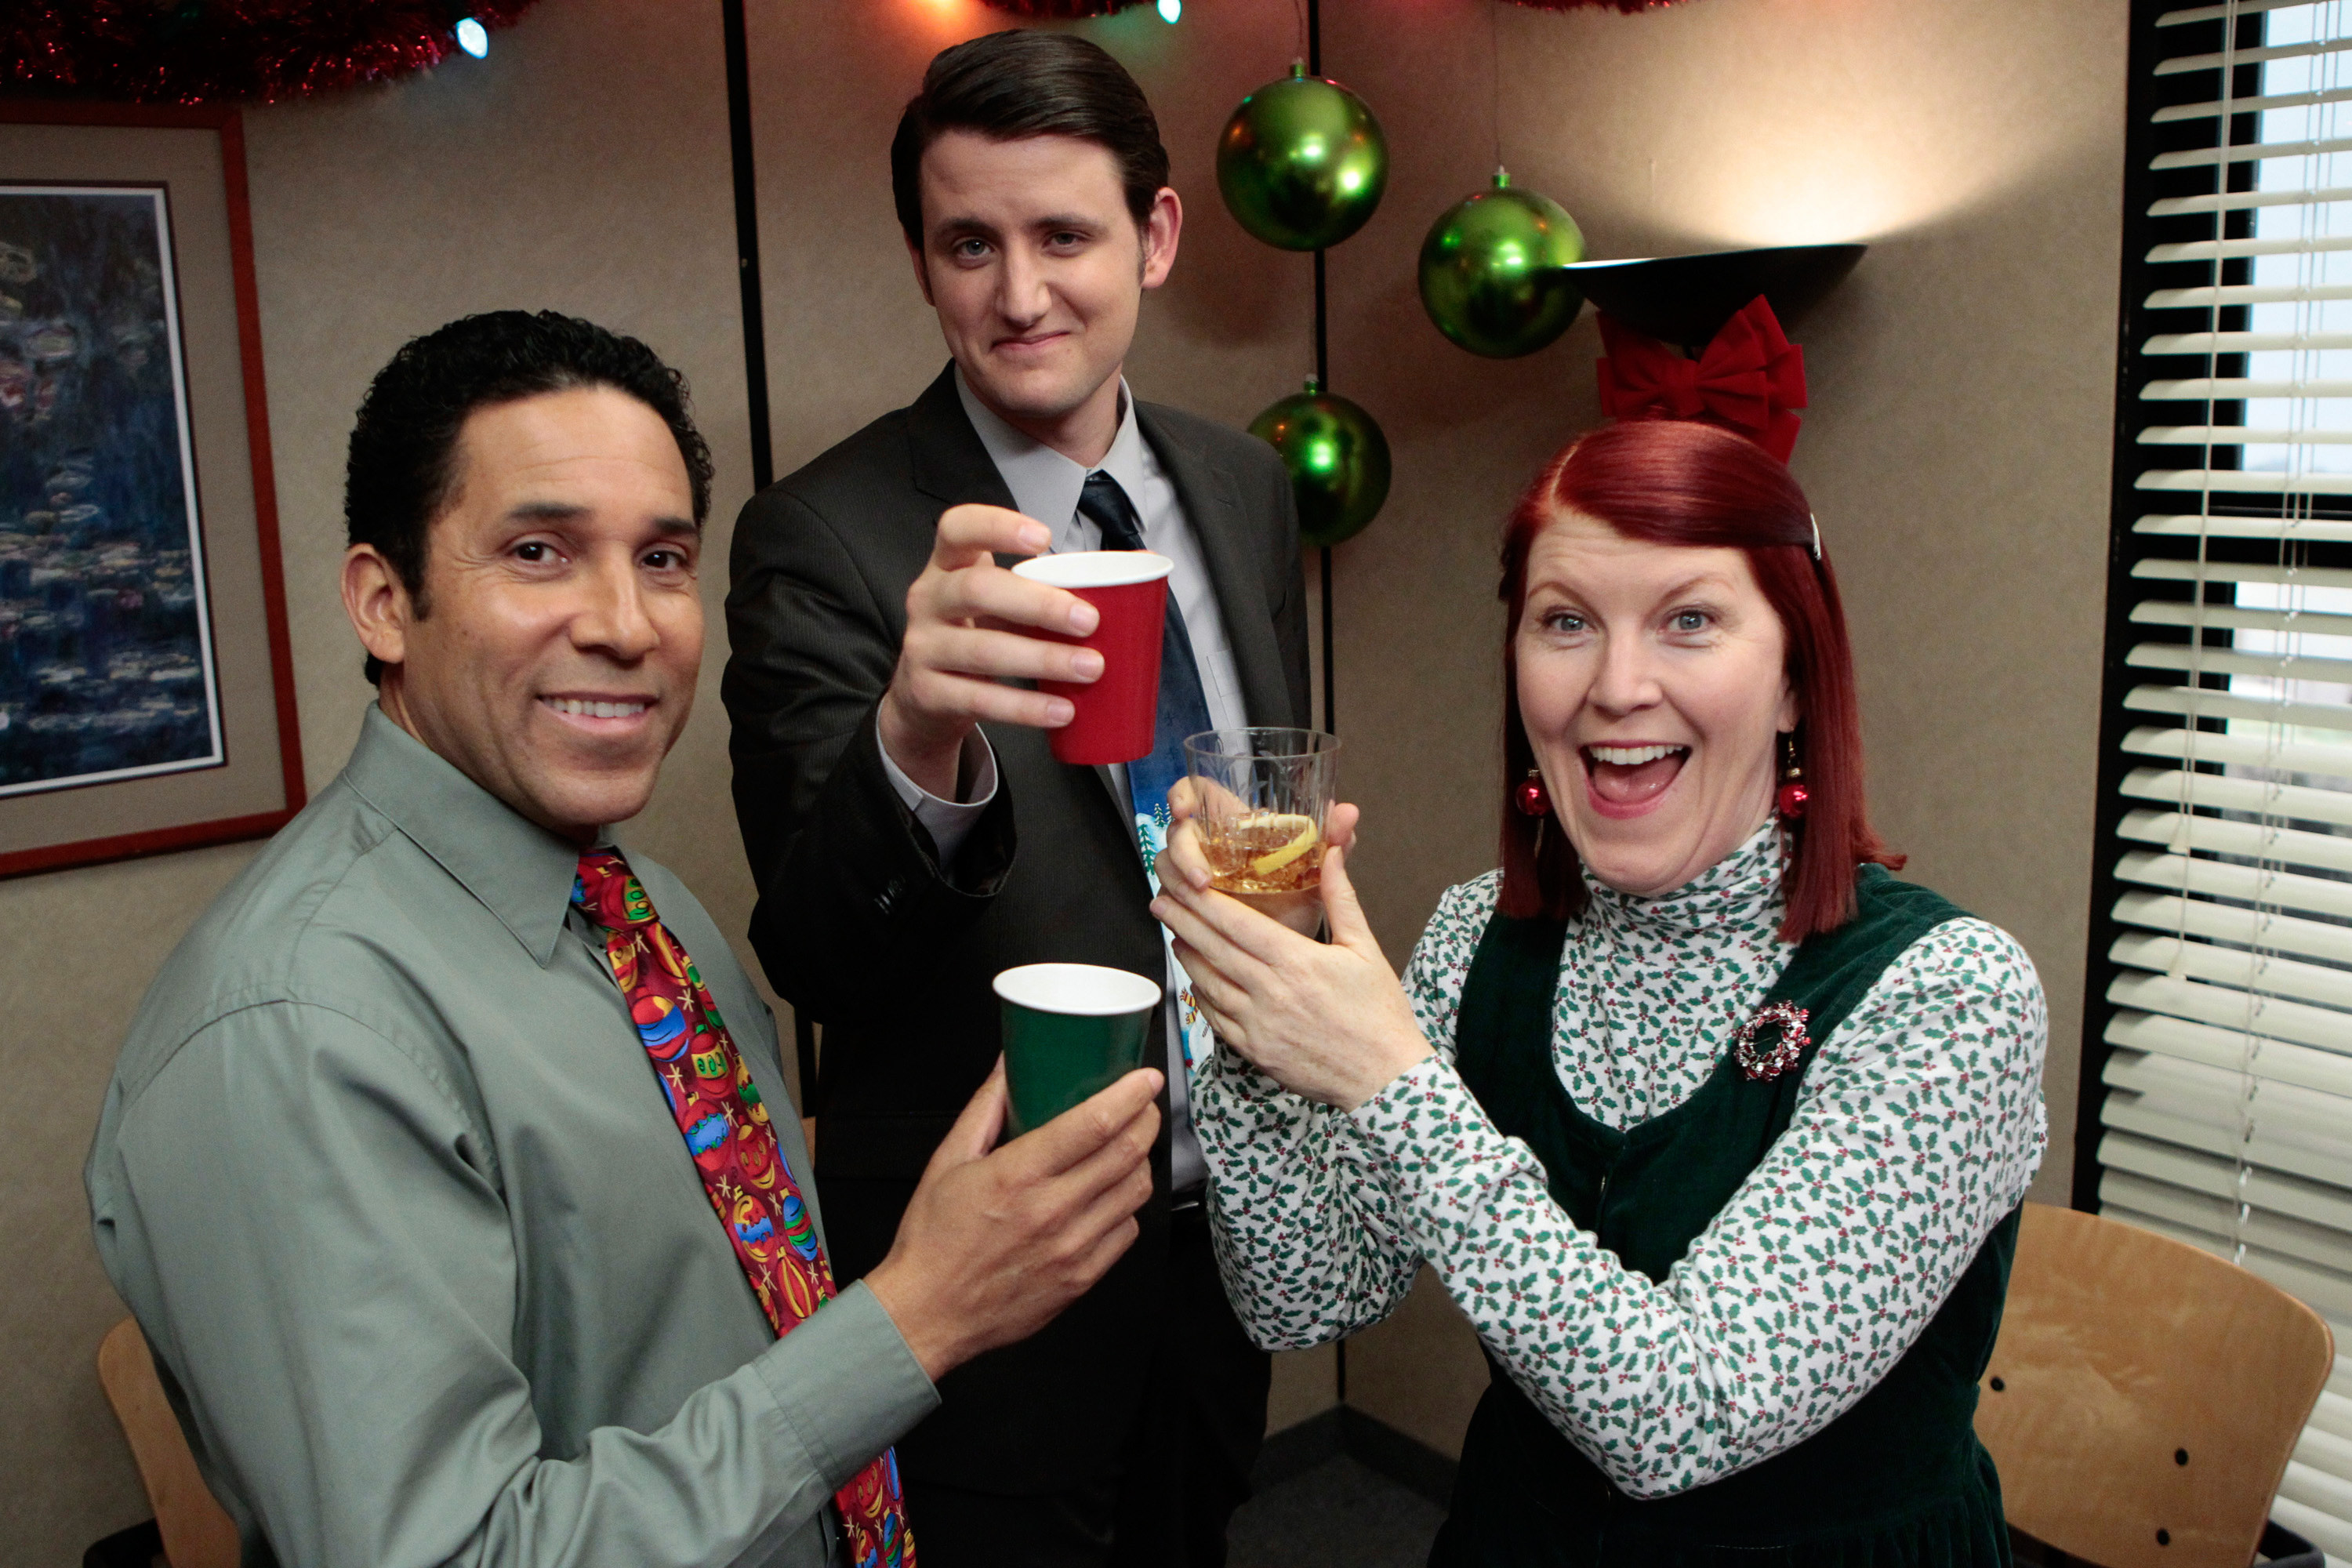 Oscar Nunez, Zach Woods, and Kate Flannery at a holiday party